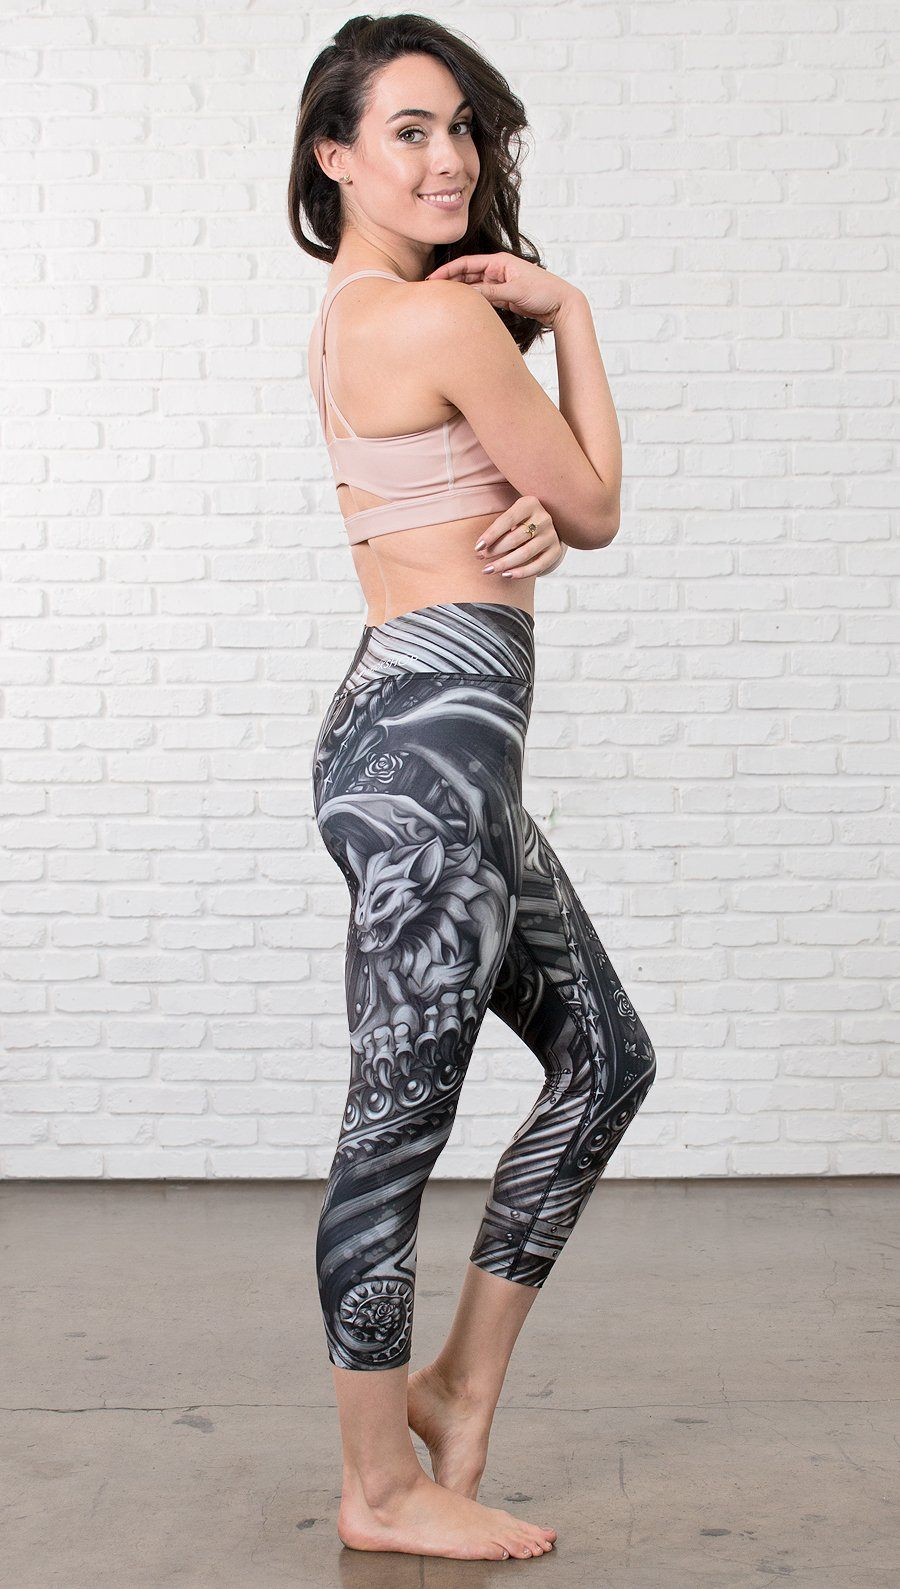 closeup left side view of model wearing gothic themed printed capri leggings